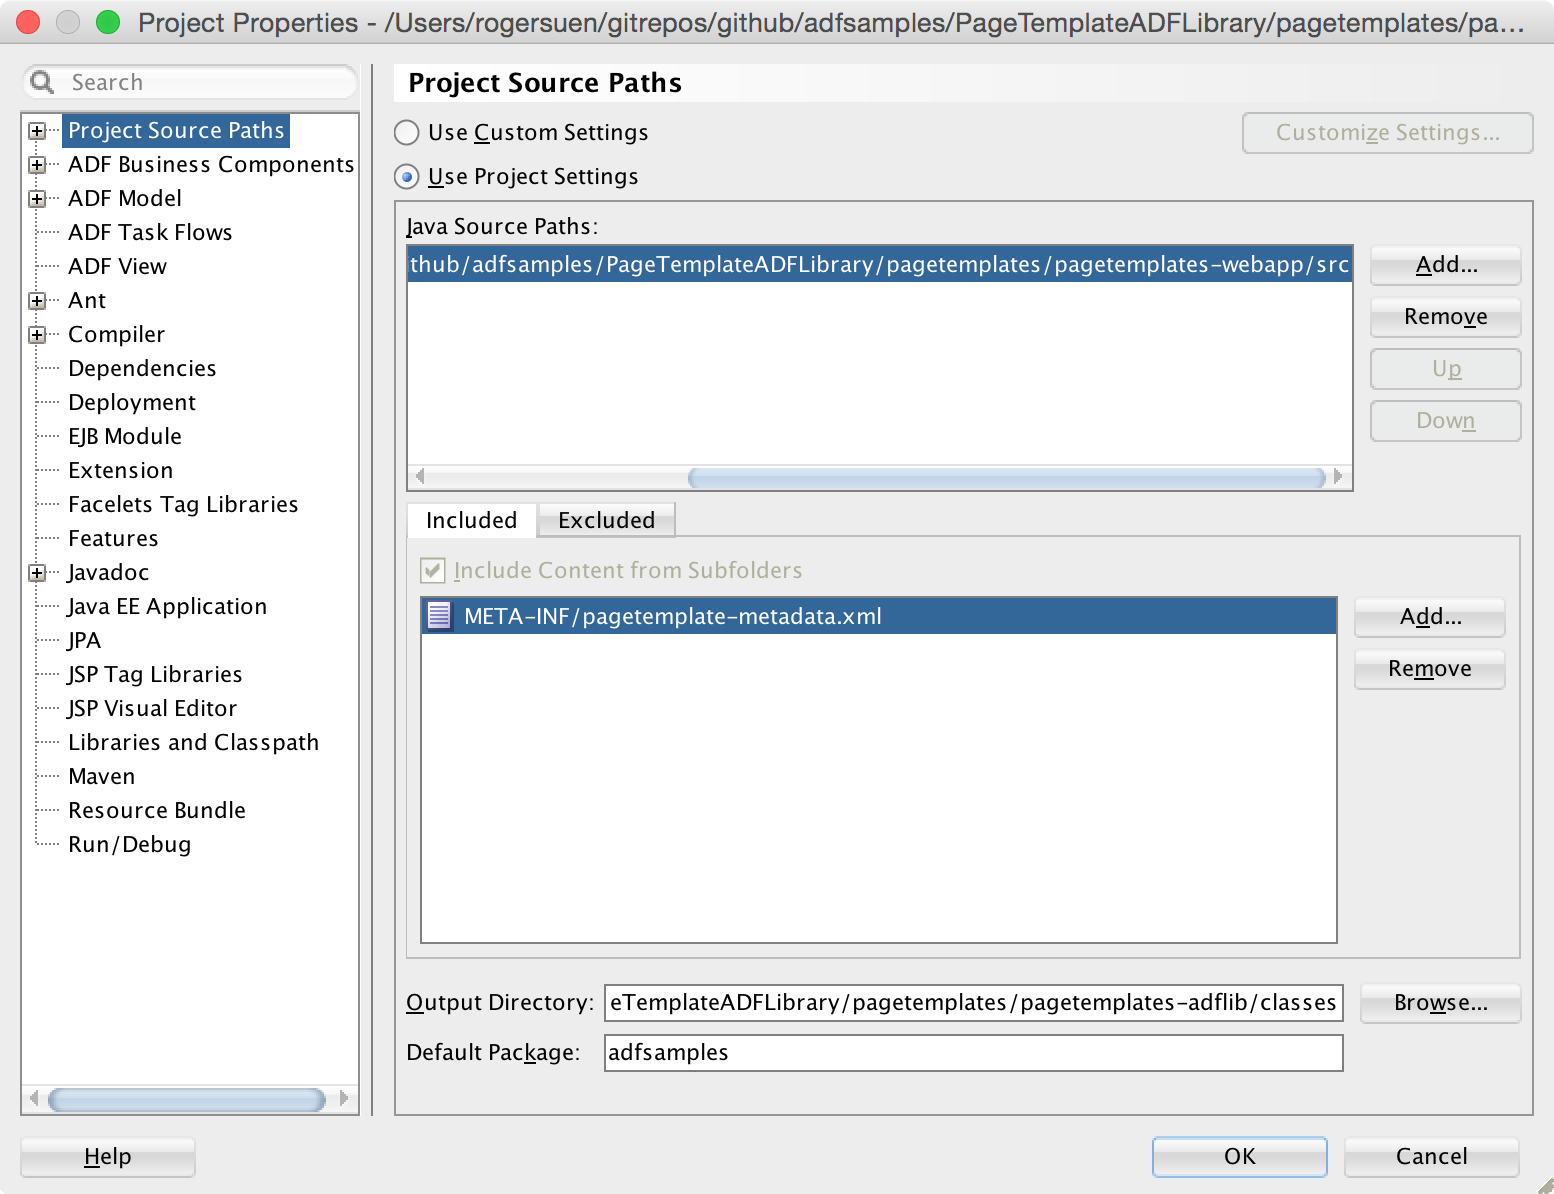 Image: Project Properties / Project Source Paths